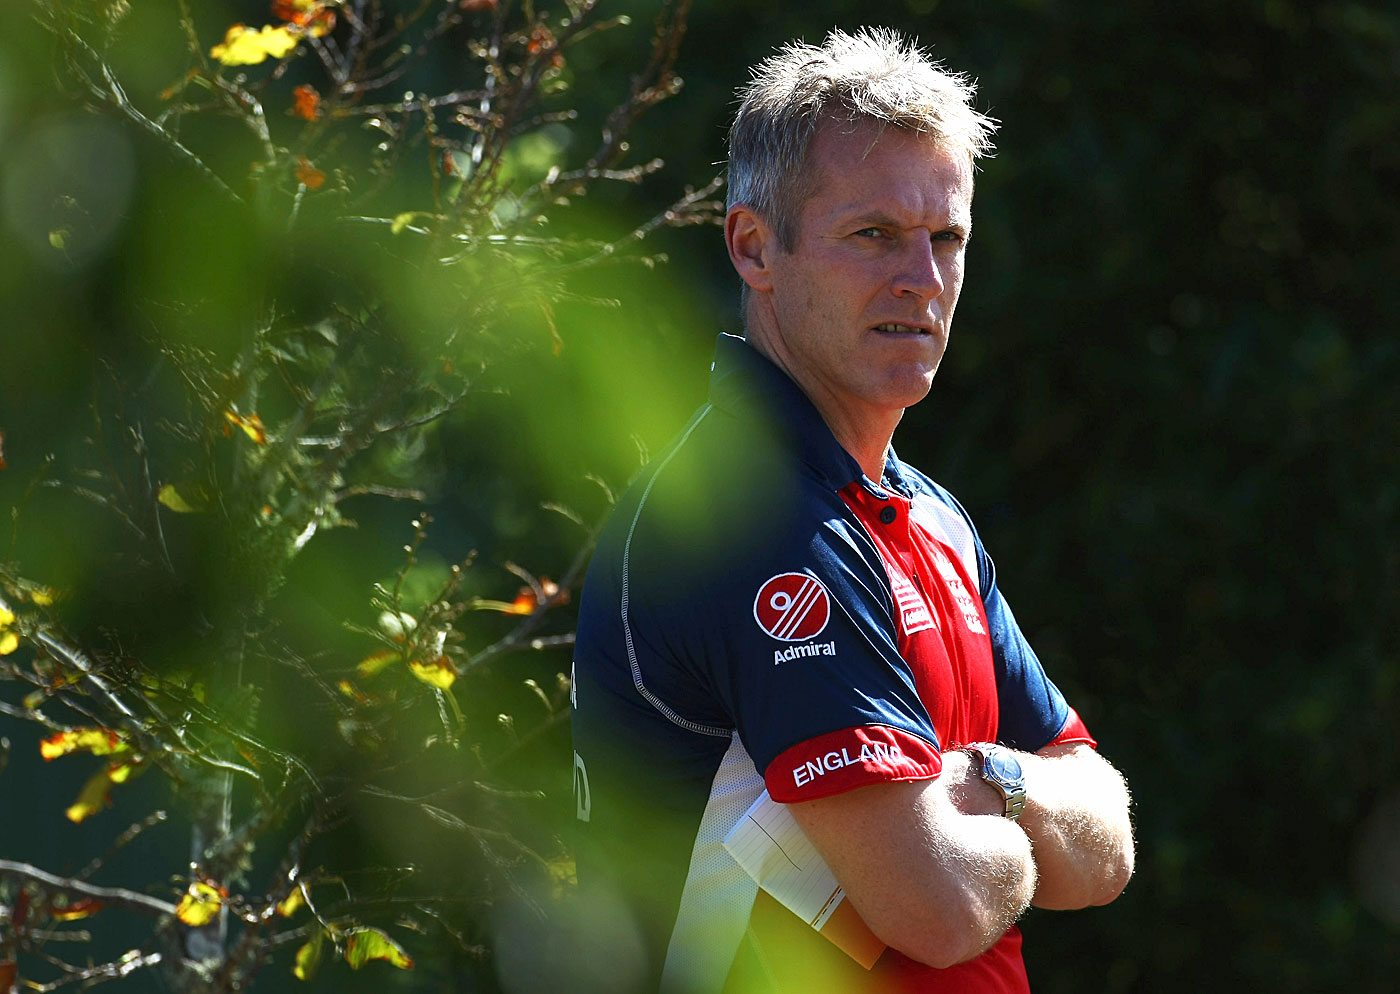 Peter Moores was criticised for being data-driven but so are many teams and coaches